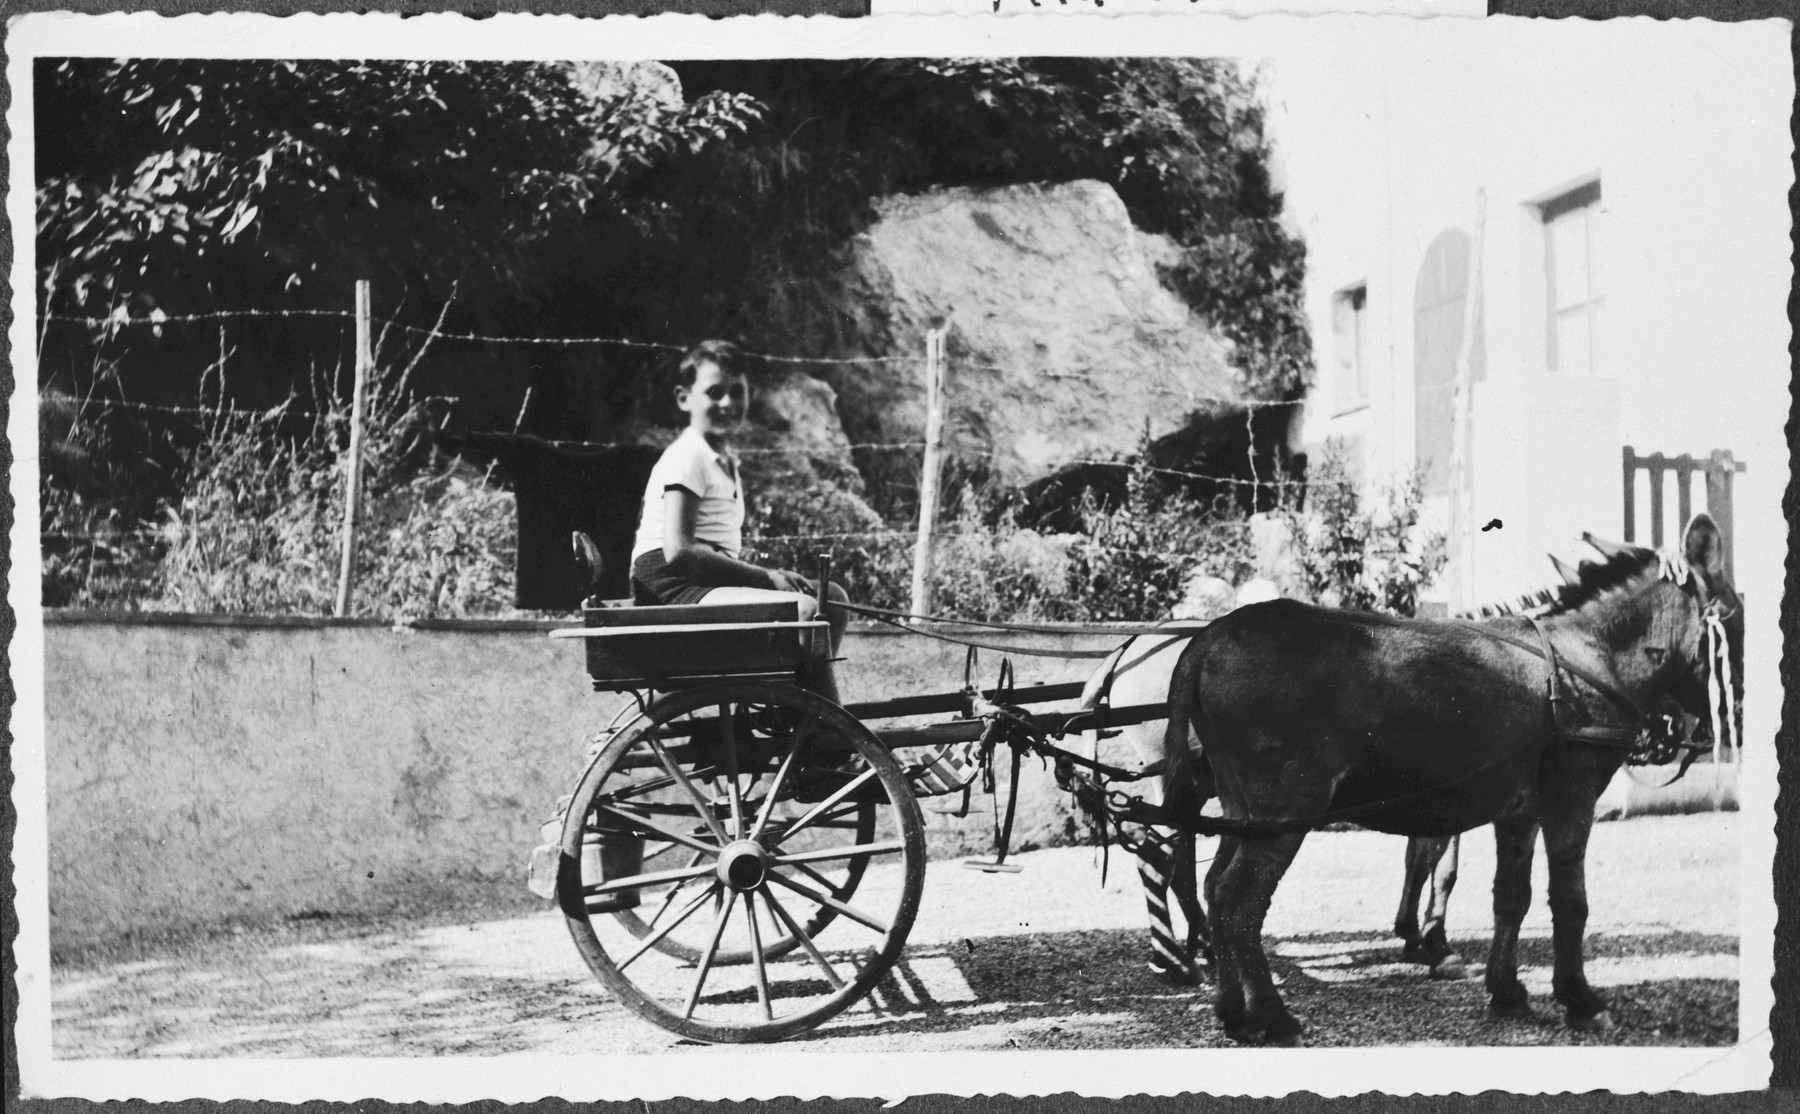 Sergio Minerbi rides a pony or donkey wagon during his summer holiday in Capri.